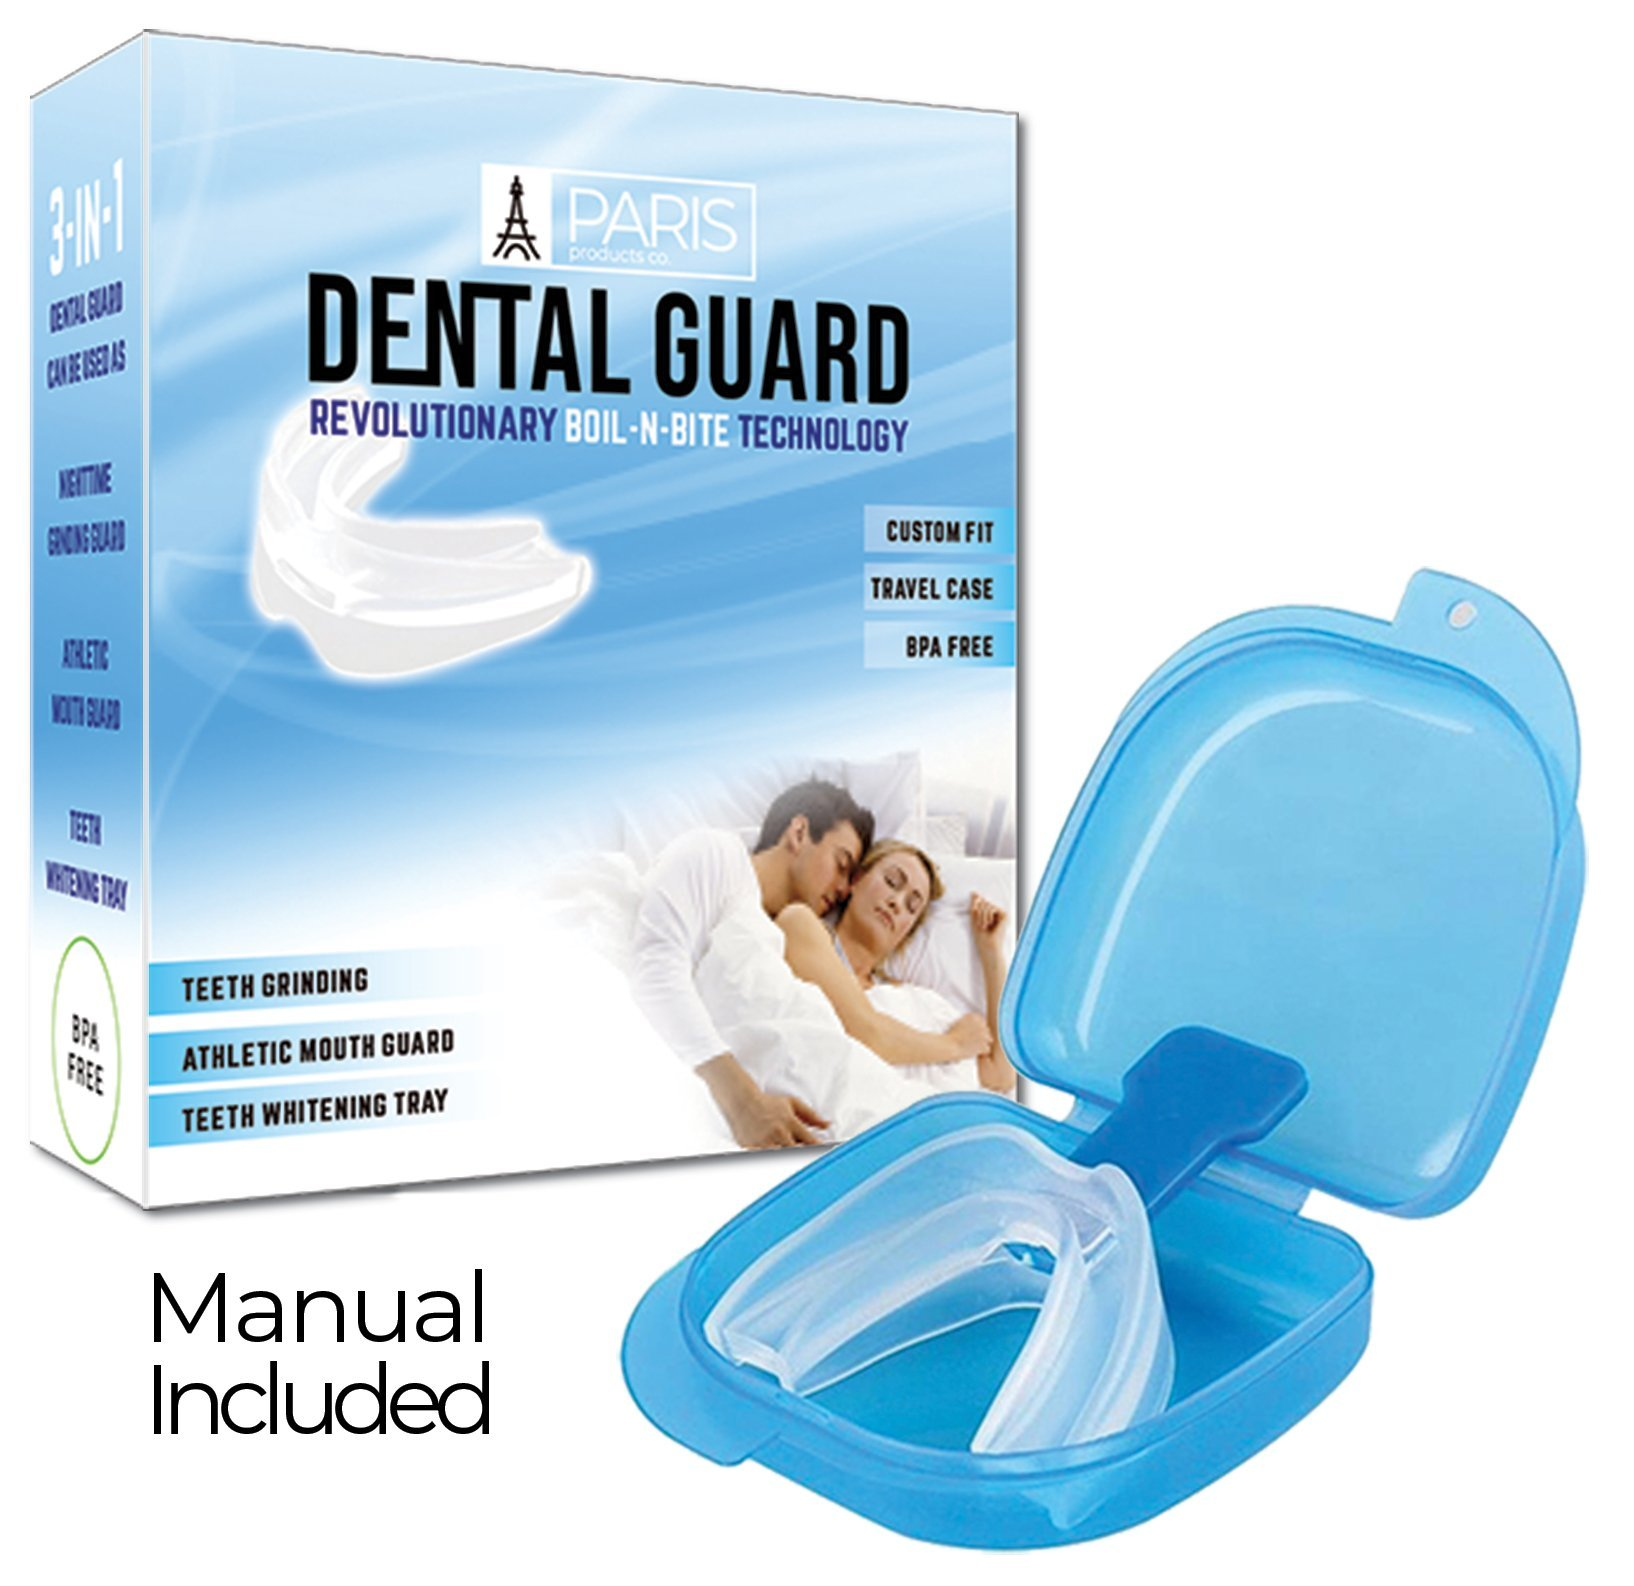 Professional Dental Guard - Stops Teeth Grinding, Bruxism & Eliminates Teeth Clenching, Includes Instructions & Anti-Bacterial Case   Athletic Mouthguard Sports Mouthpiece SATISFACTION GUARANTEED